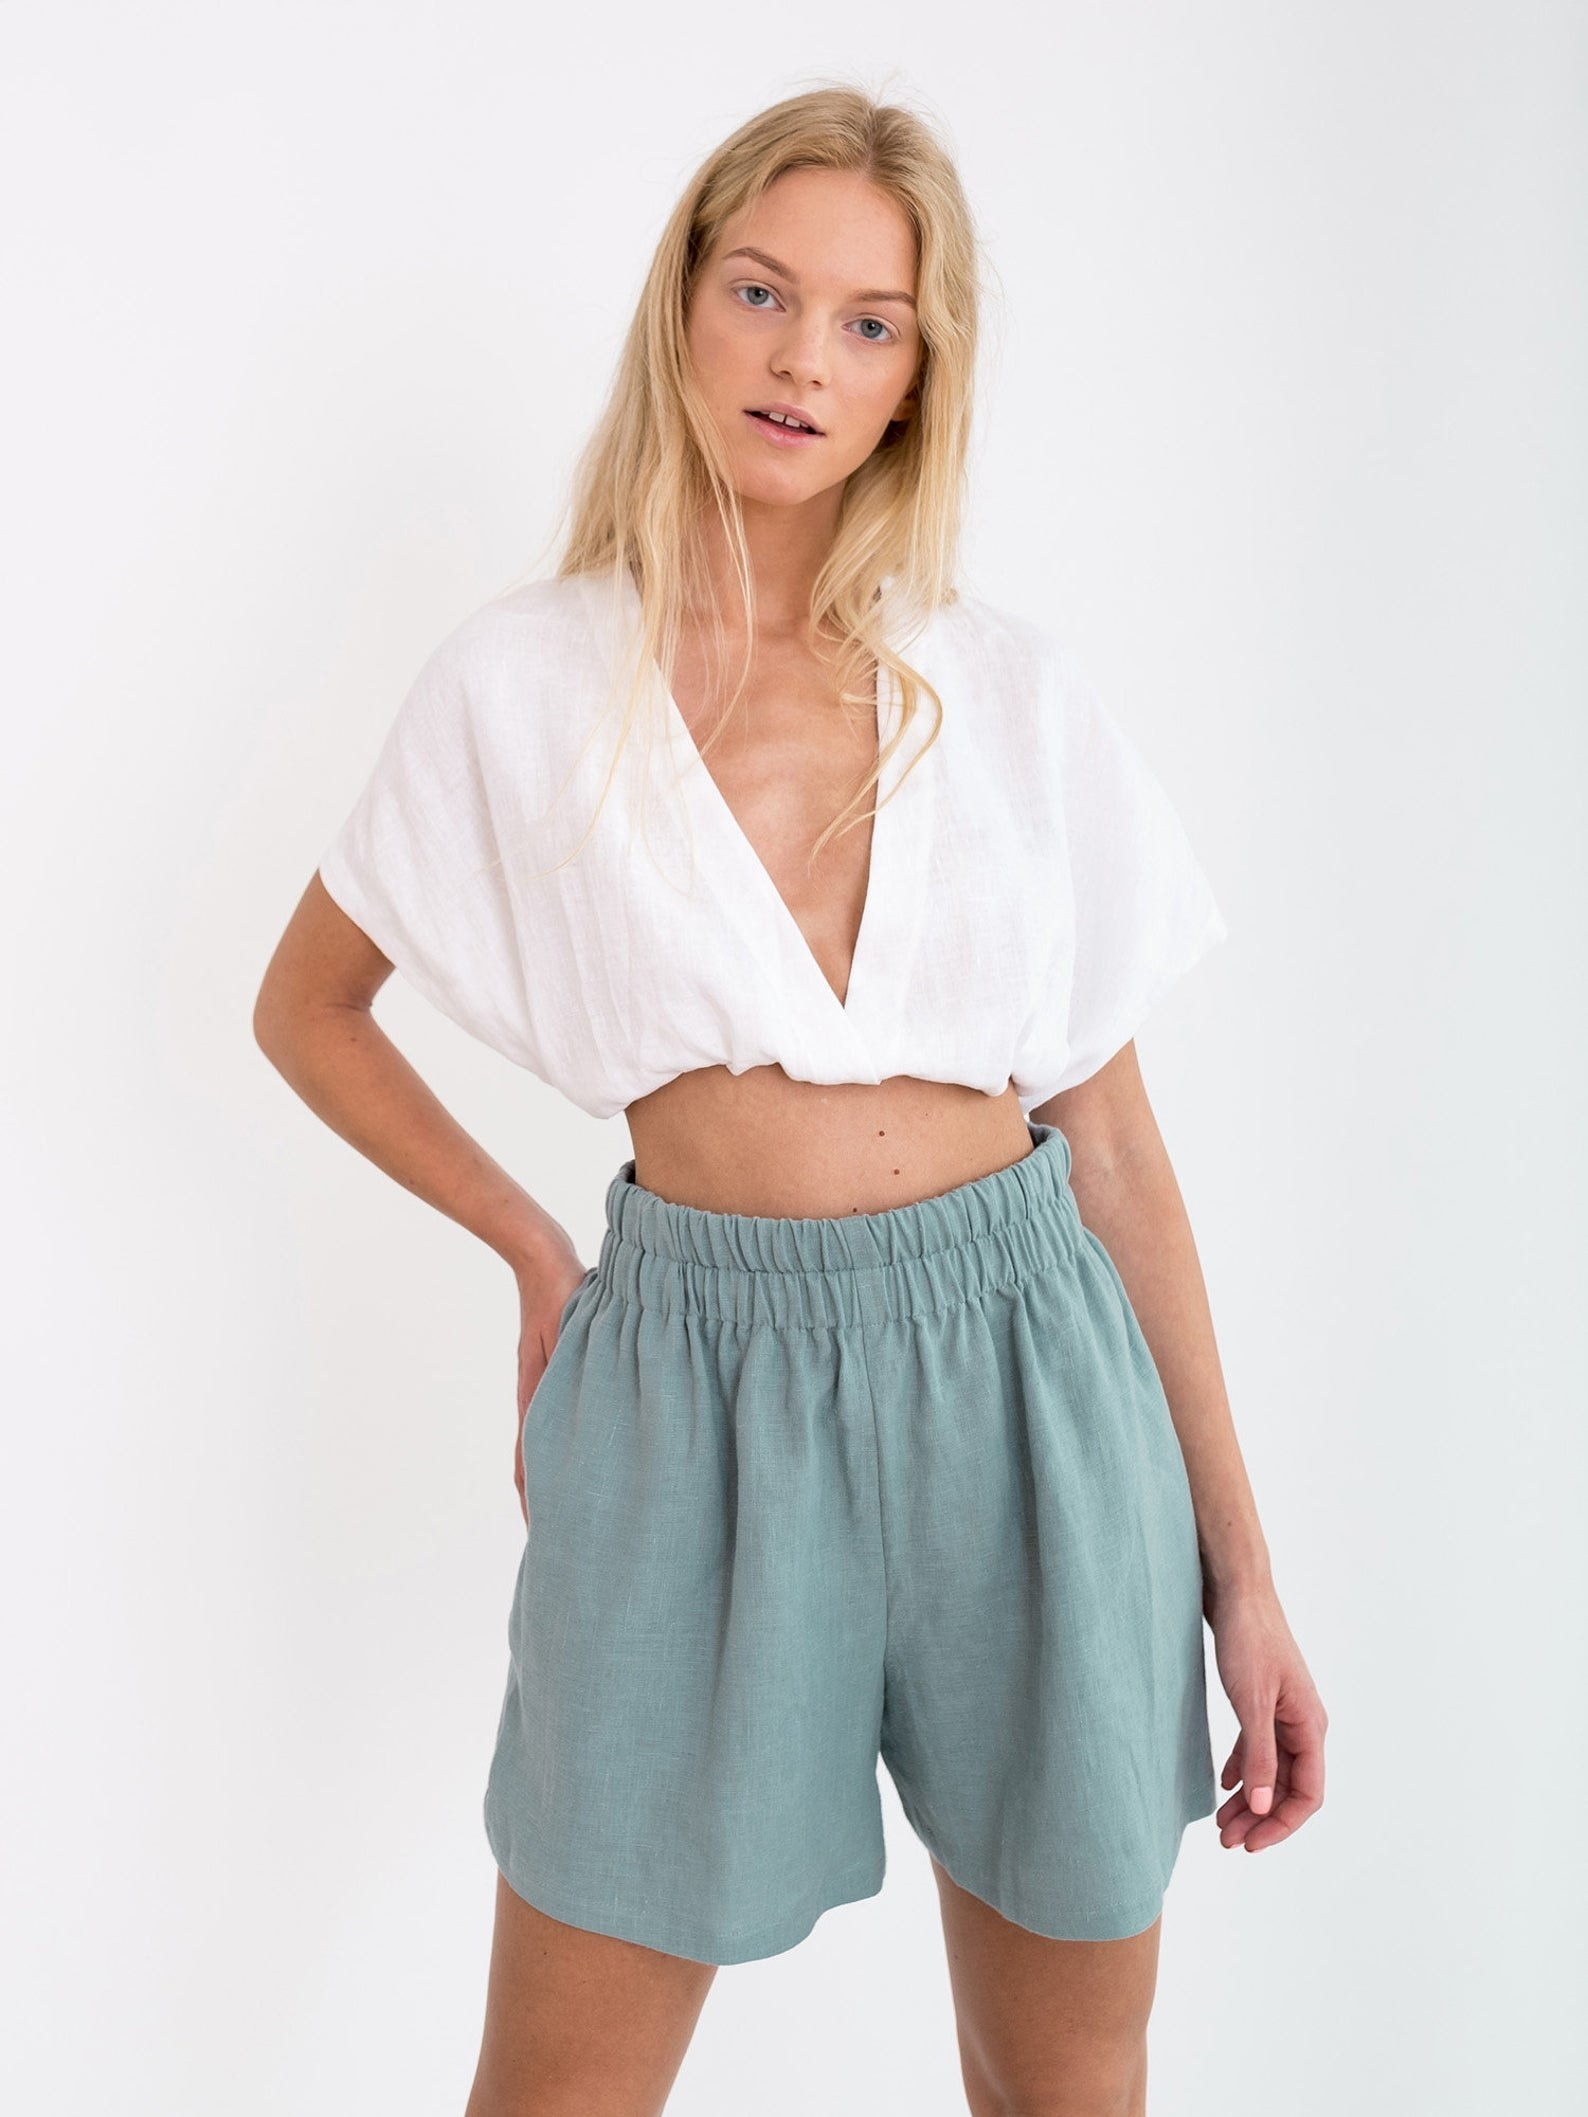 model wearing the dark turquoise isla high waisted linen shorts with a white crop top